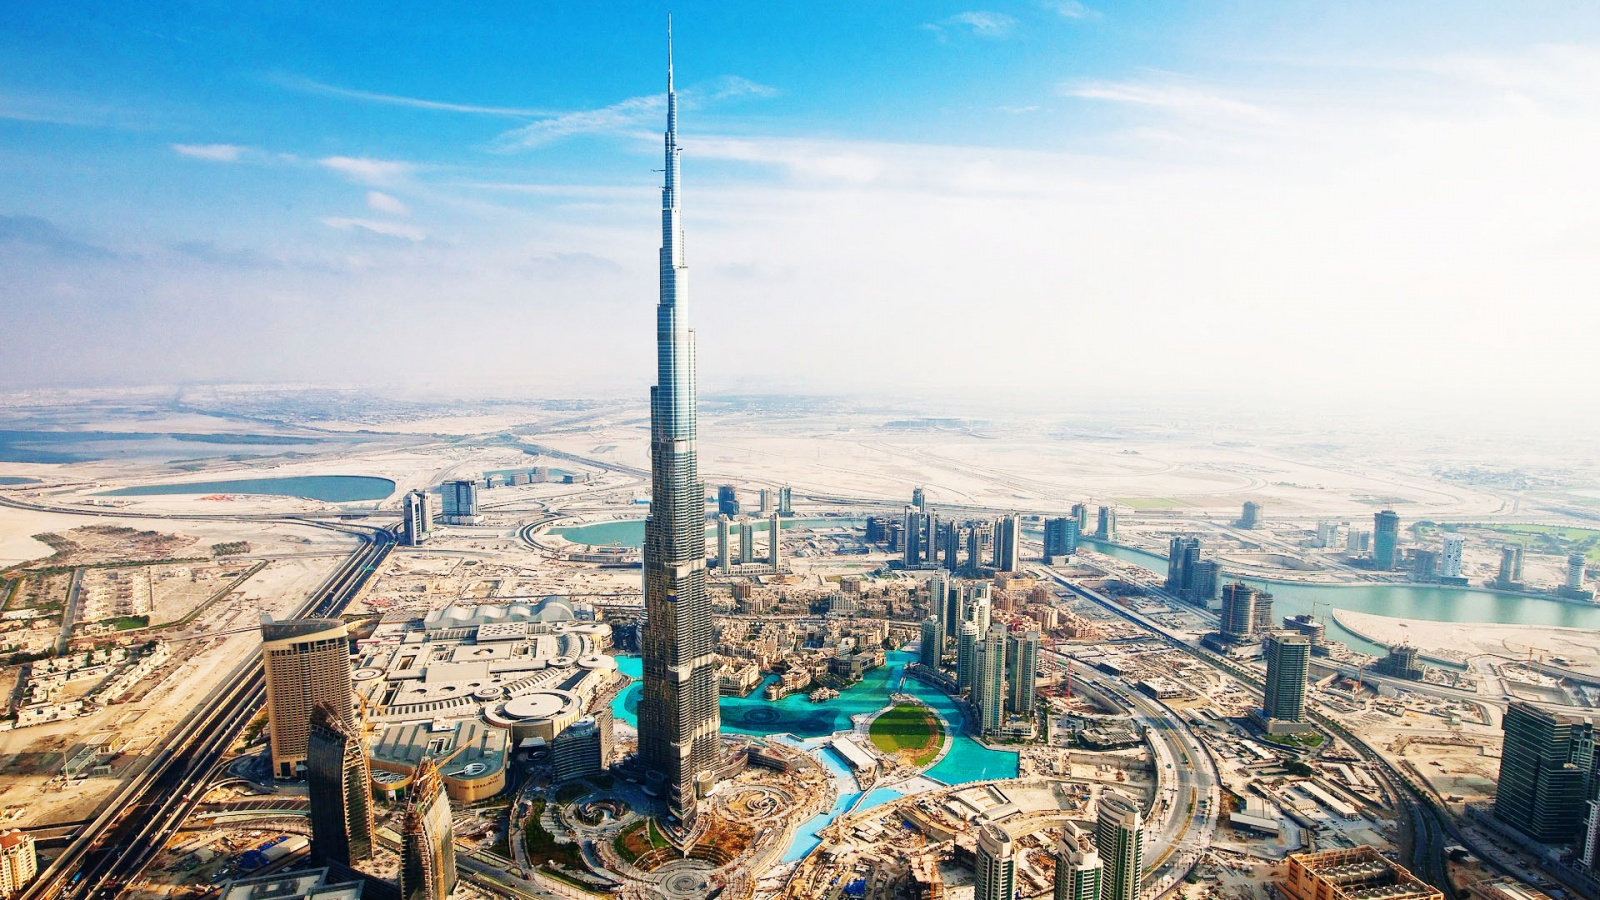 ... x 1080 Original. Description: Download Burj Khalifa ...